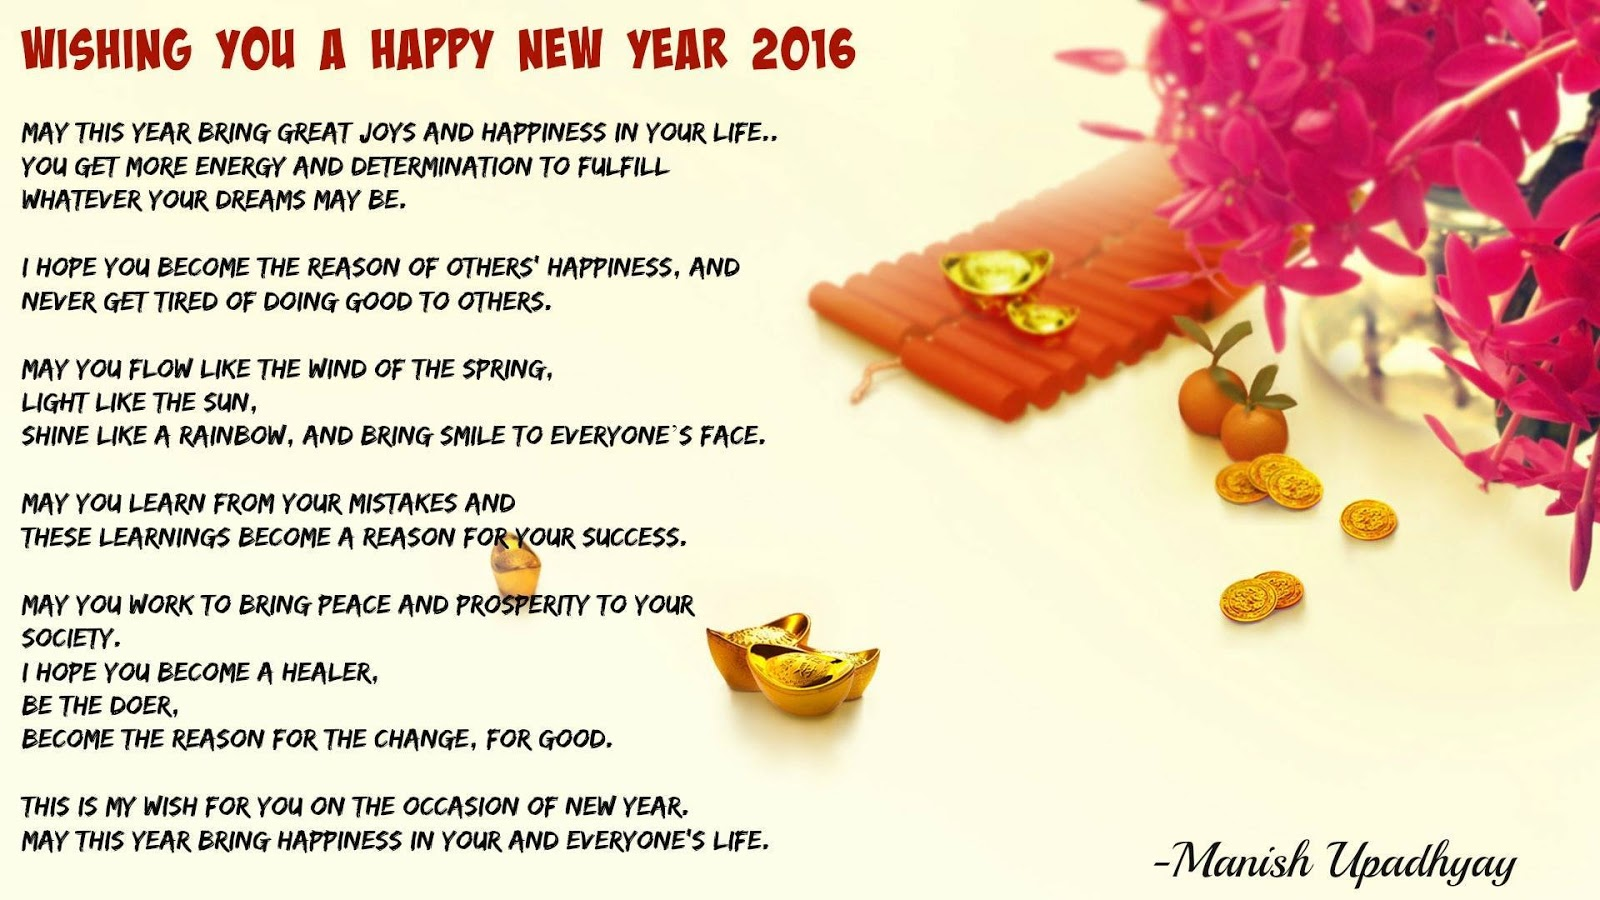 BEYOND THE WAY........: HAPPY NEW YEAR 2016...